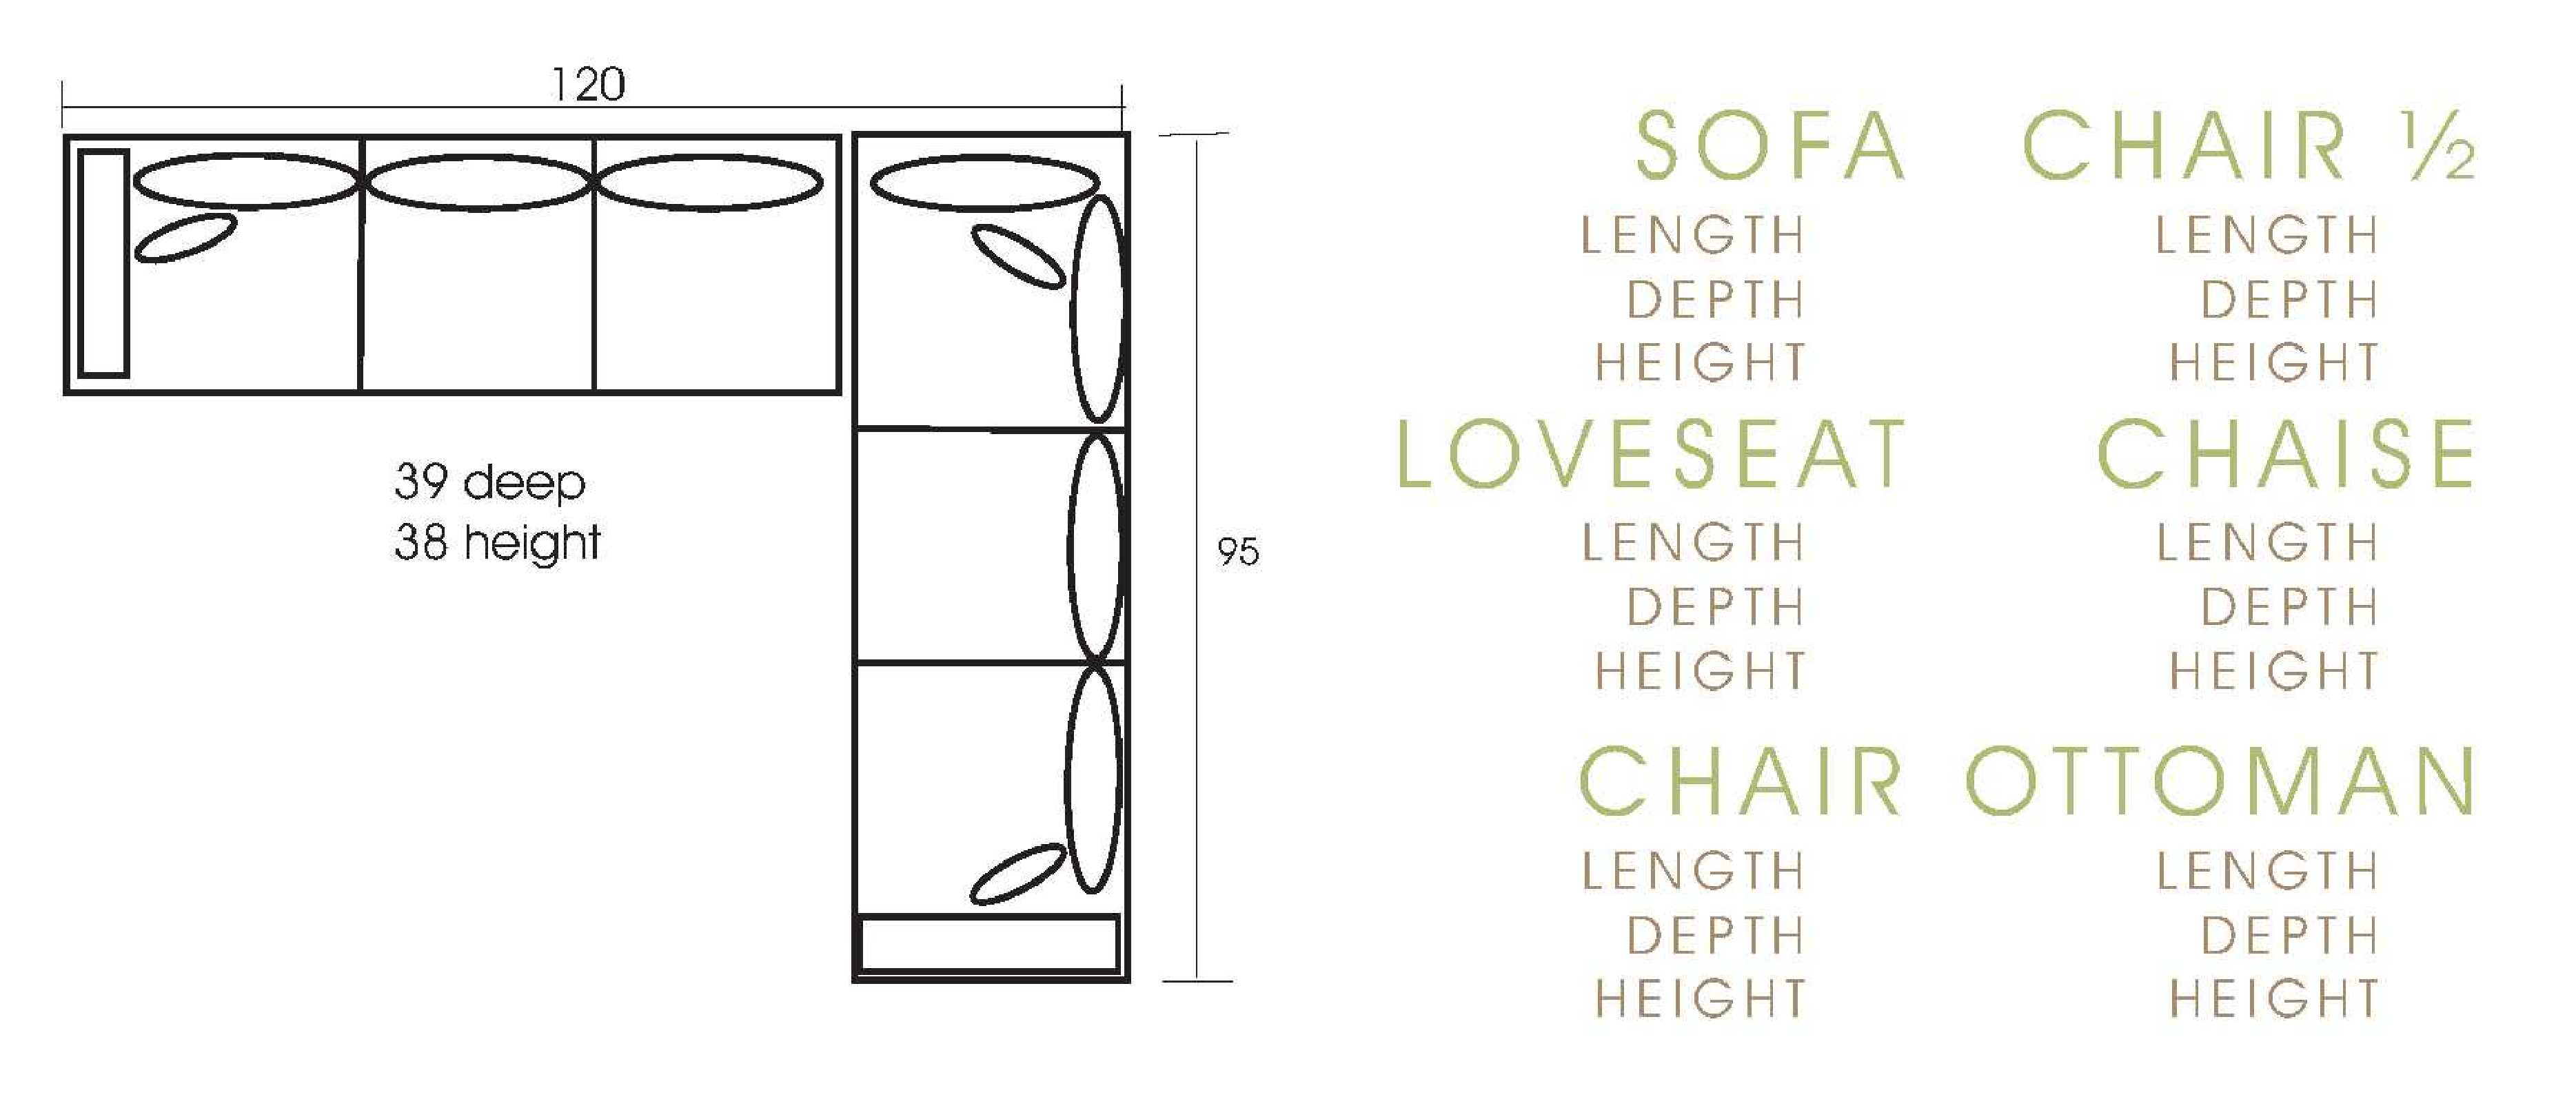 Sectional Couch Sizes submited images